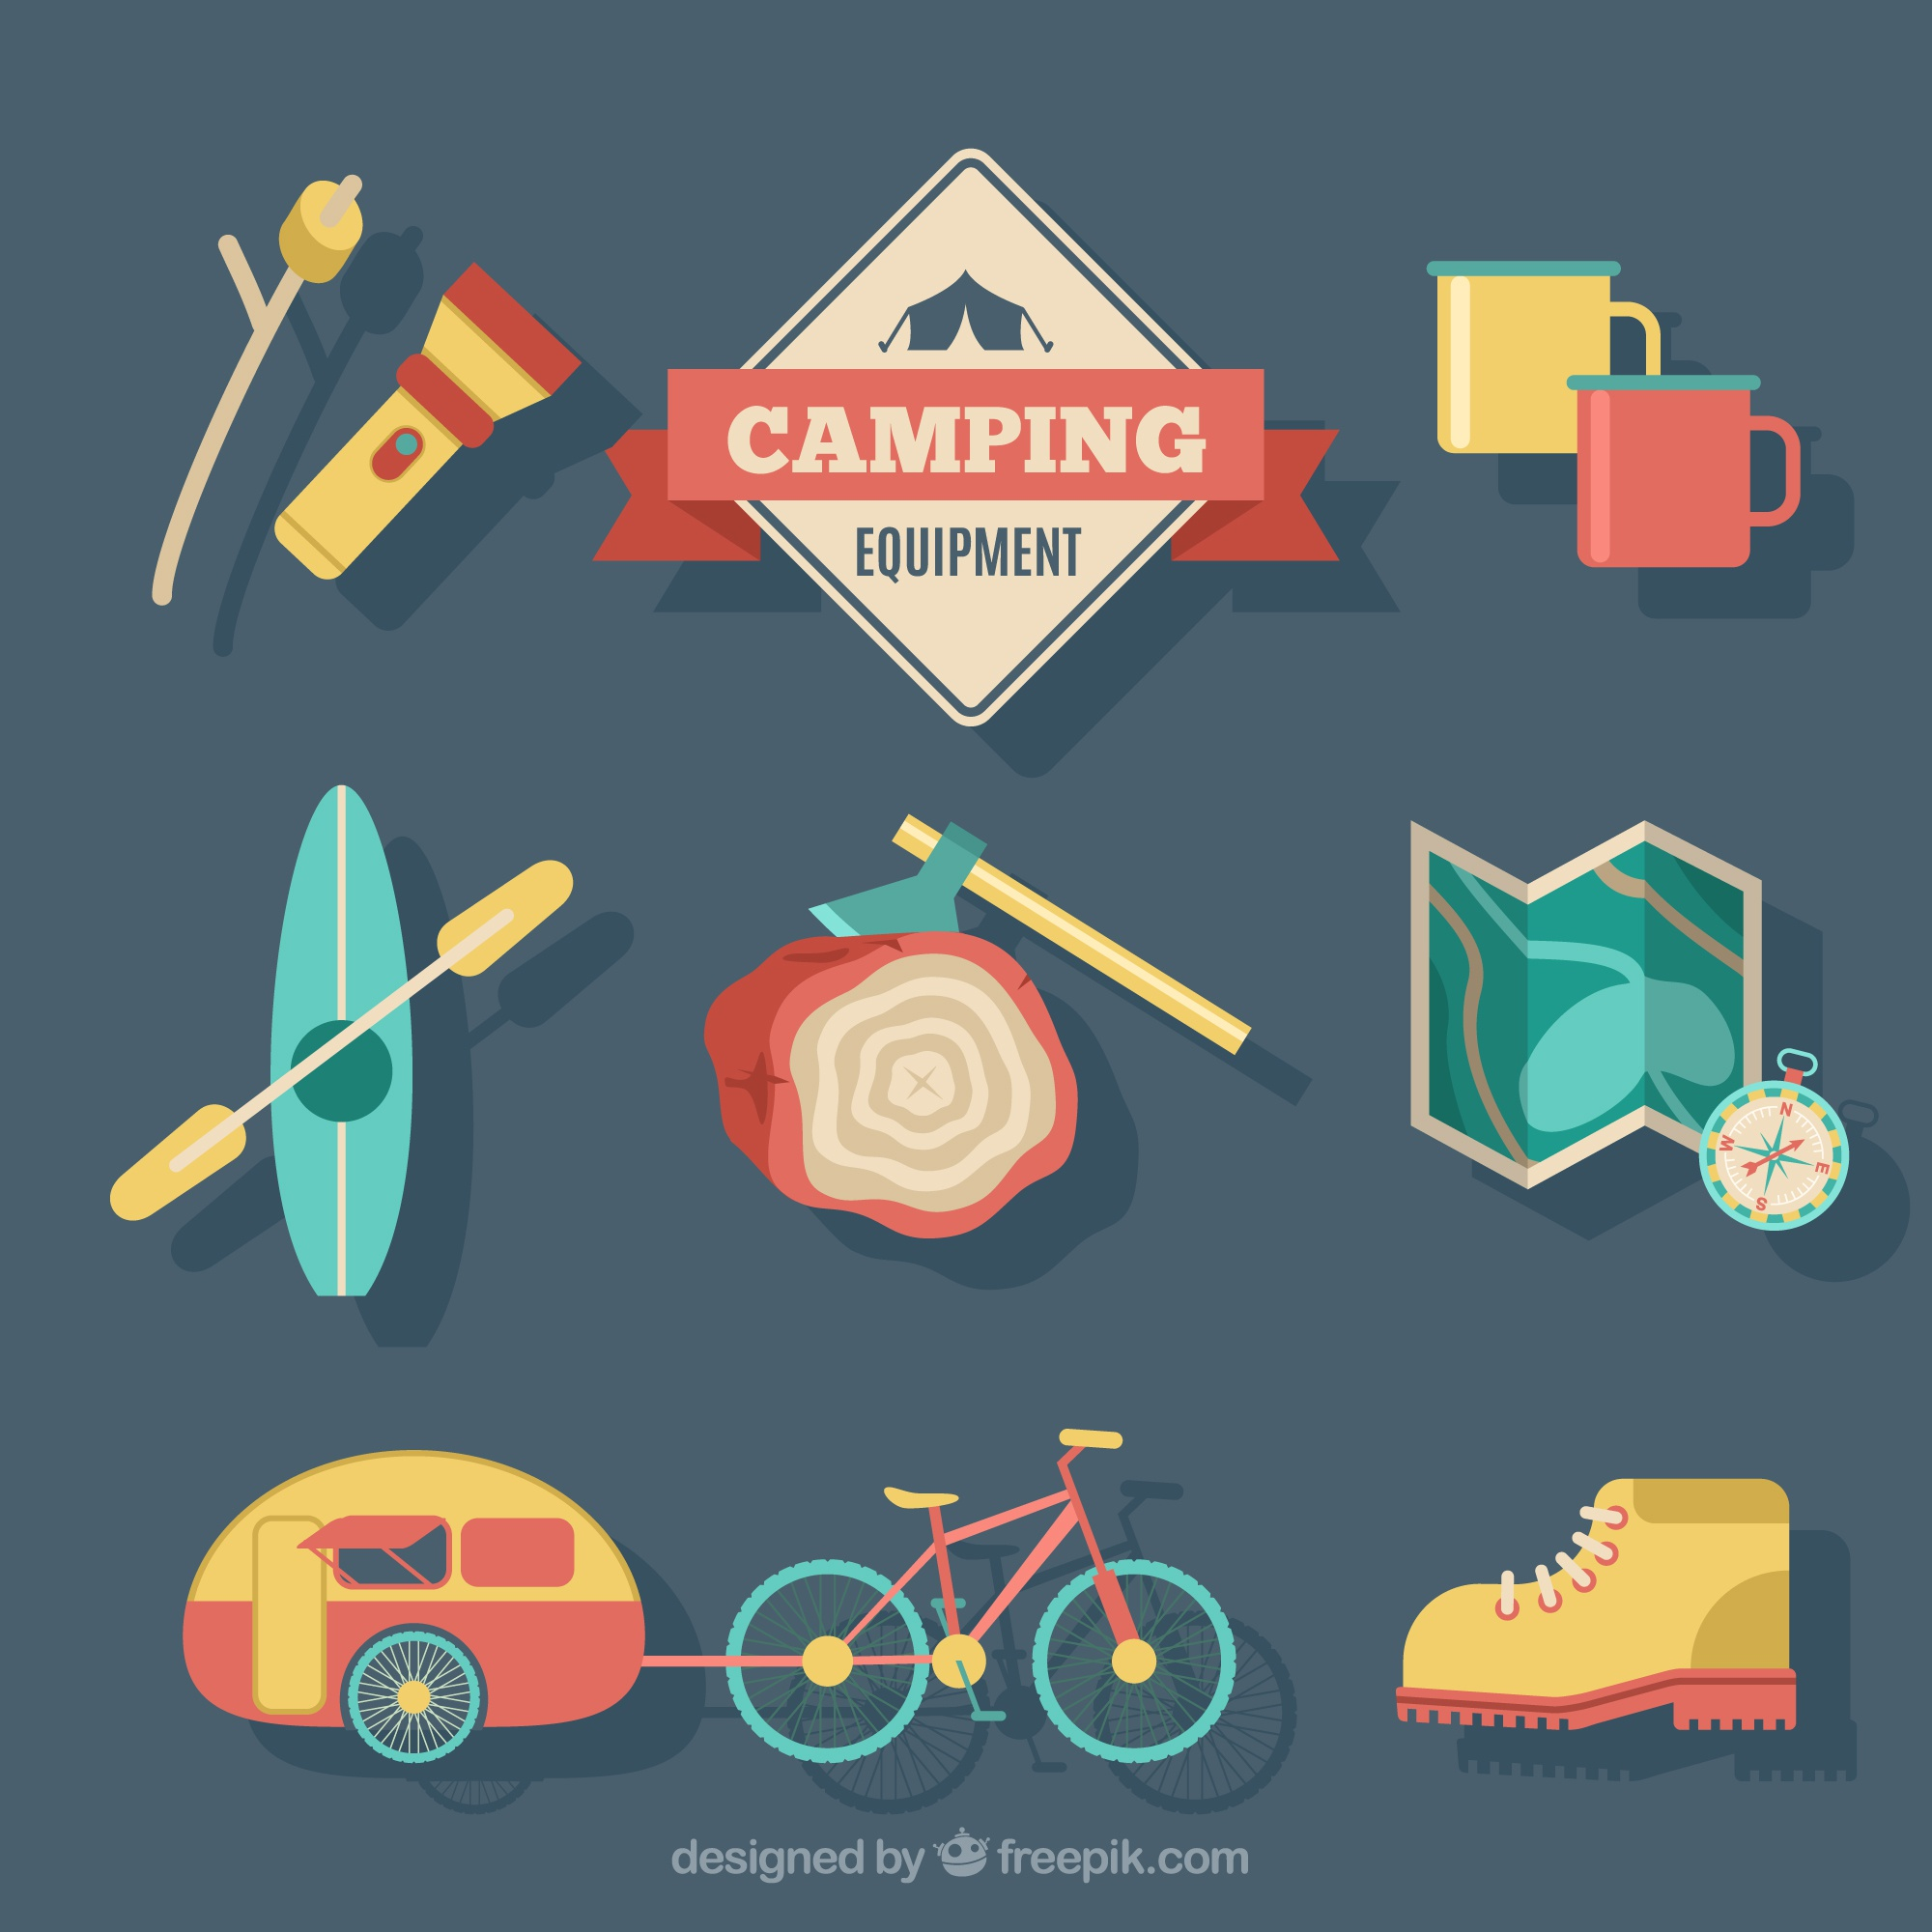 Camping equipment collection in three colors